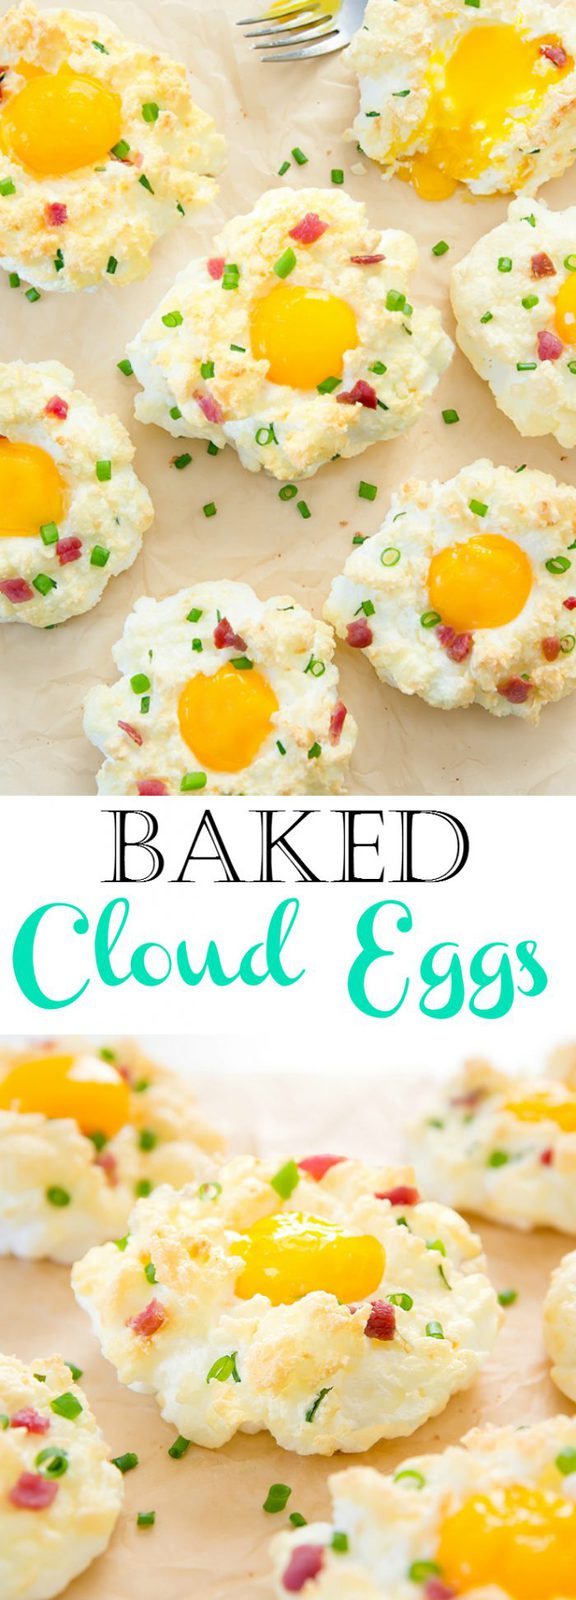 Baked Cloud Eggs